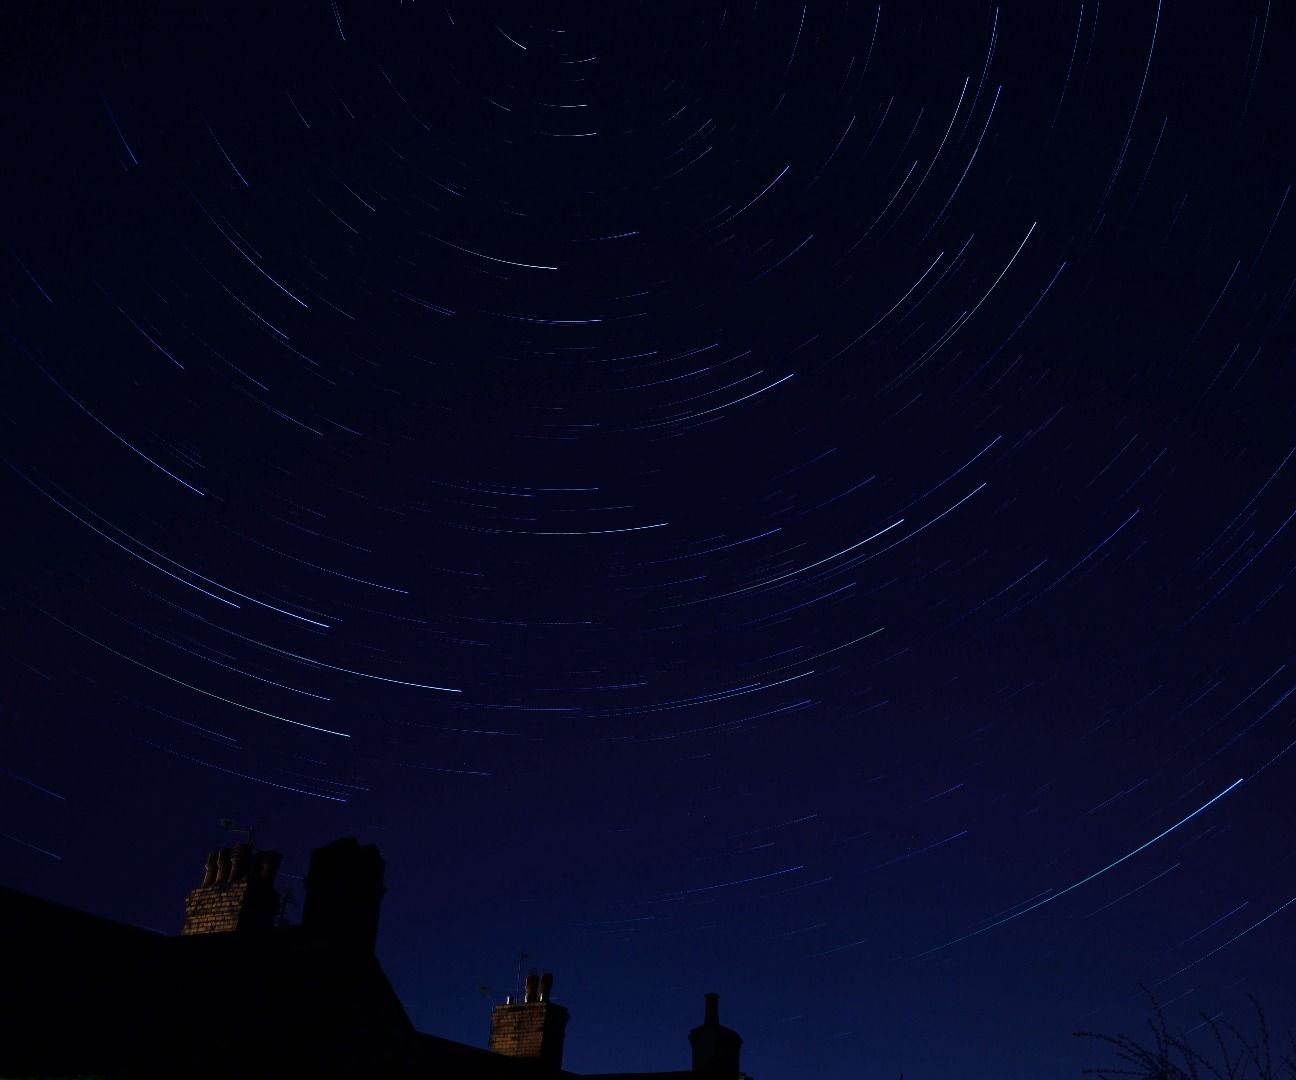 Star trails: a beginners guide